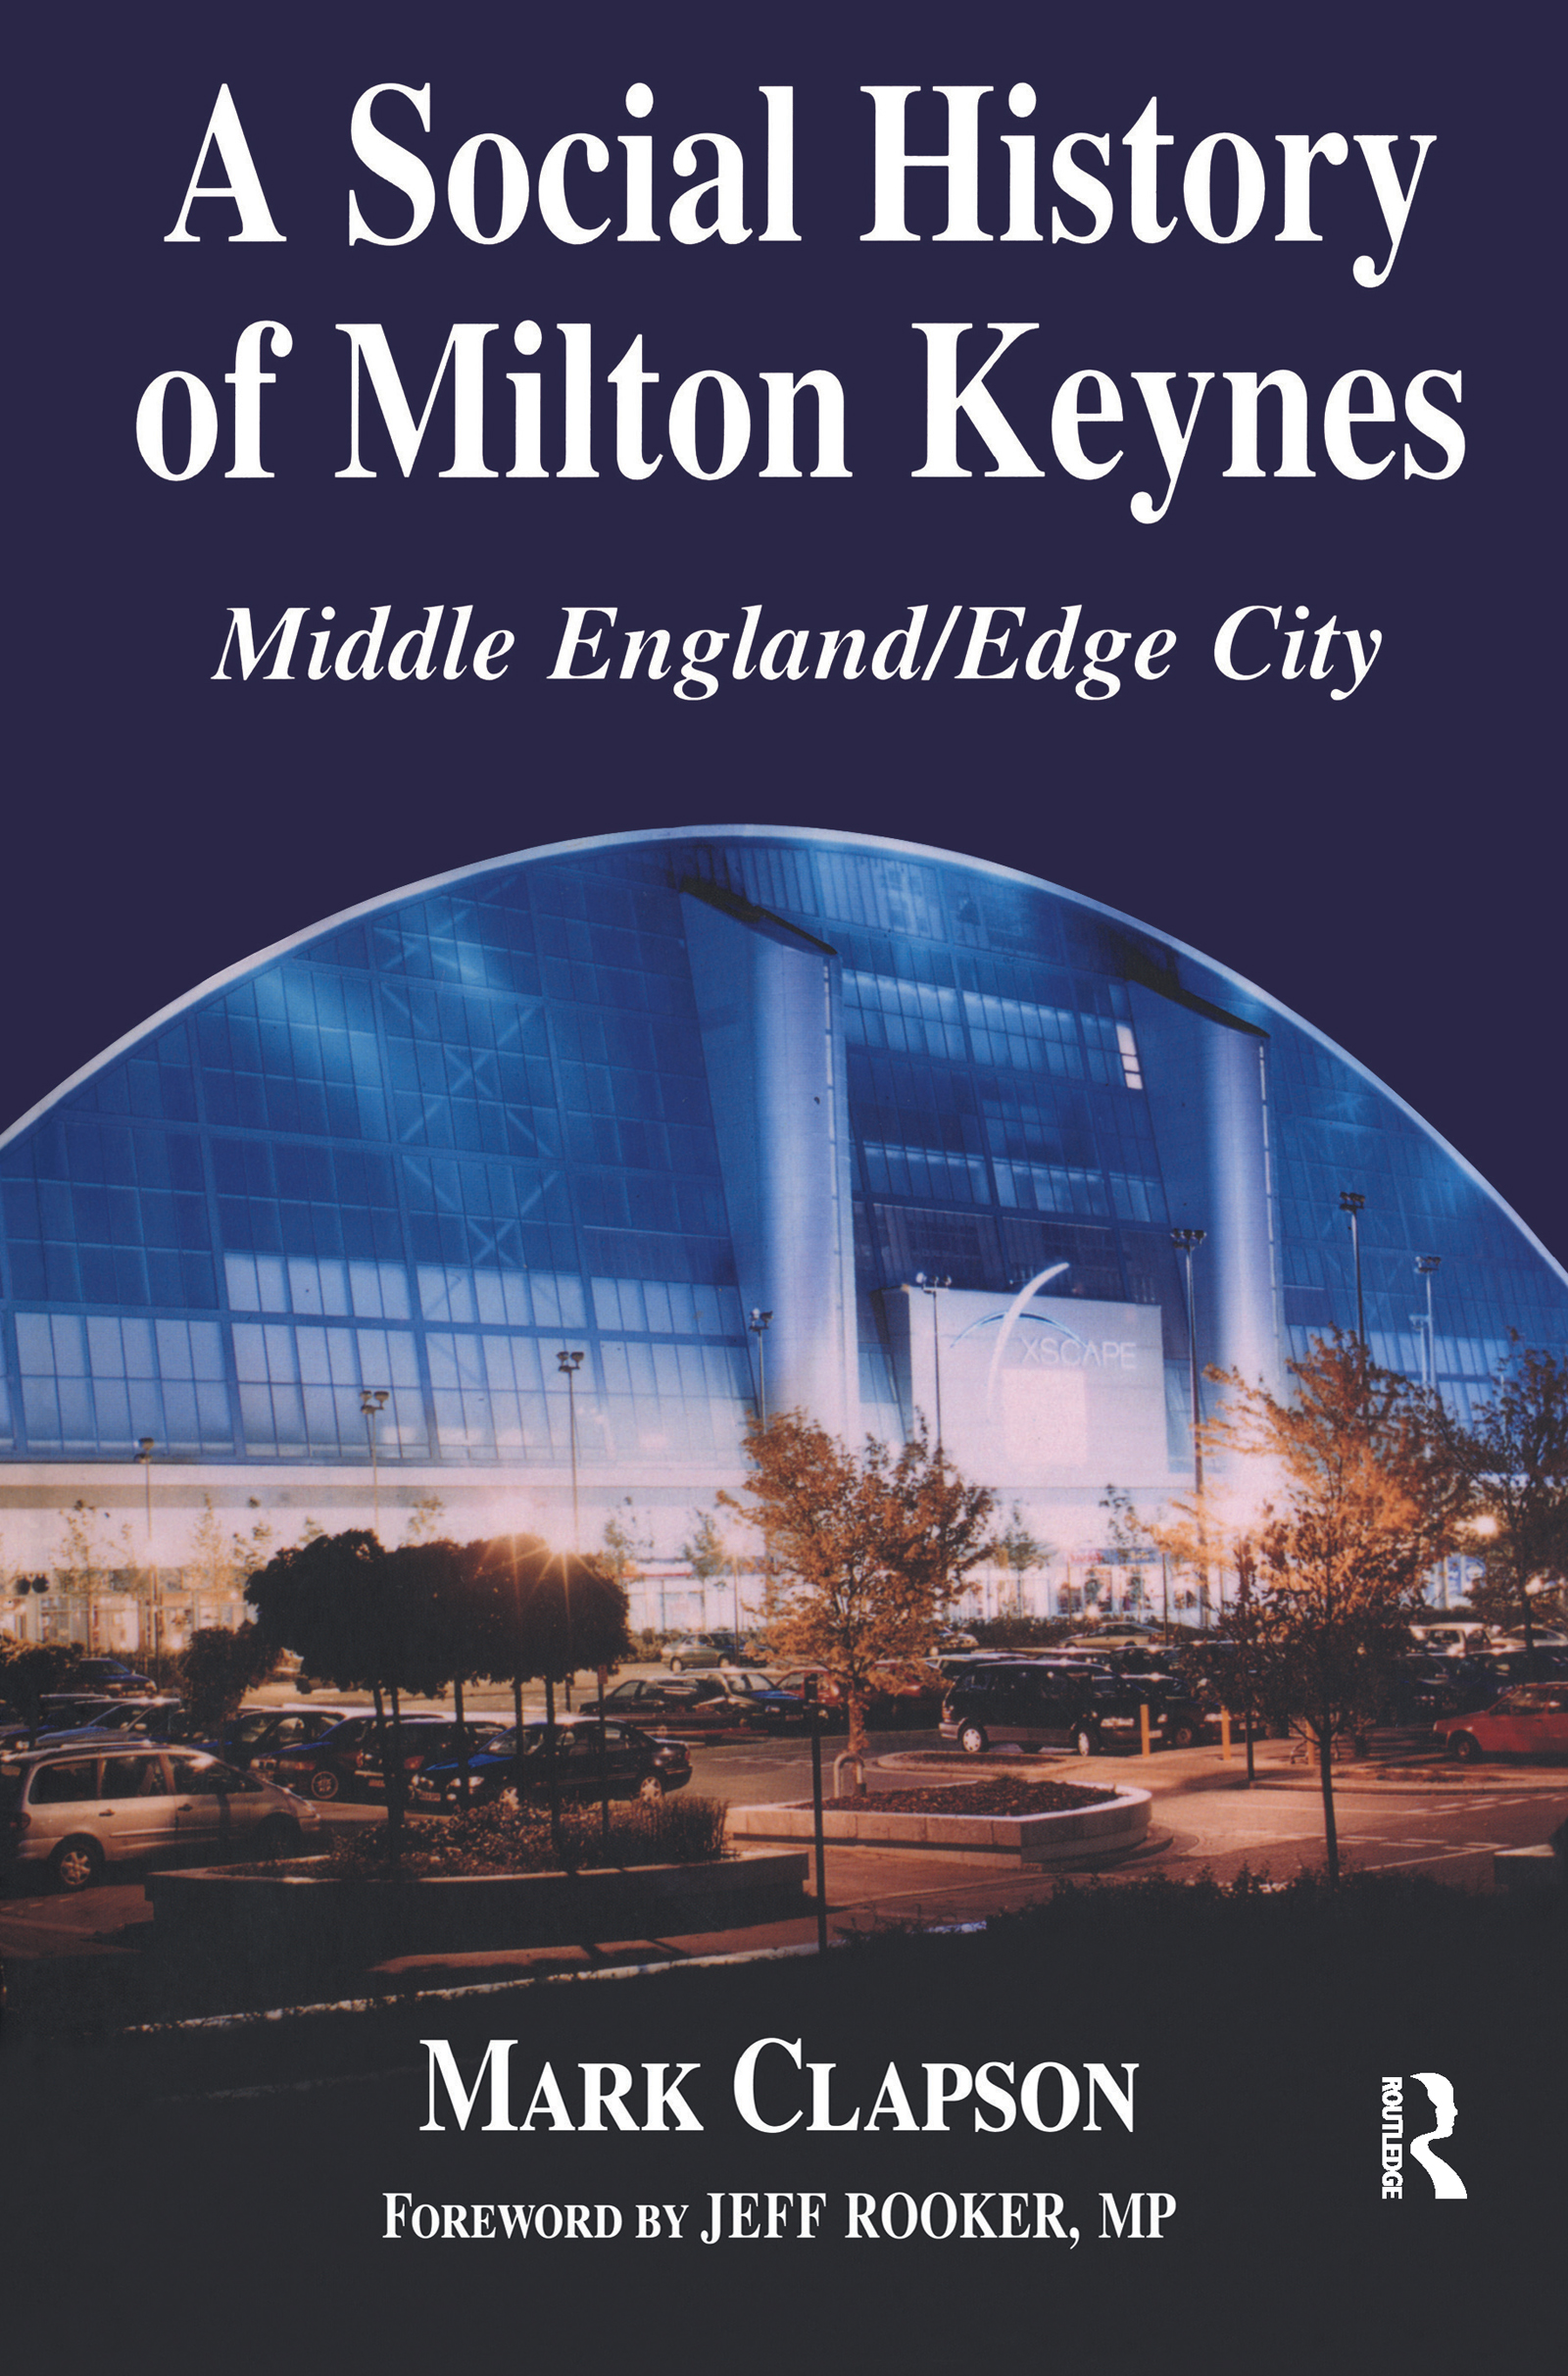 A Social History of Milton Keynes: Middle England/Edge City book cover